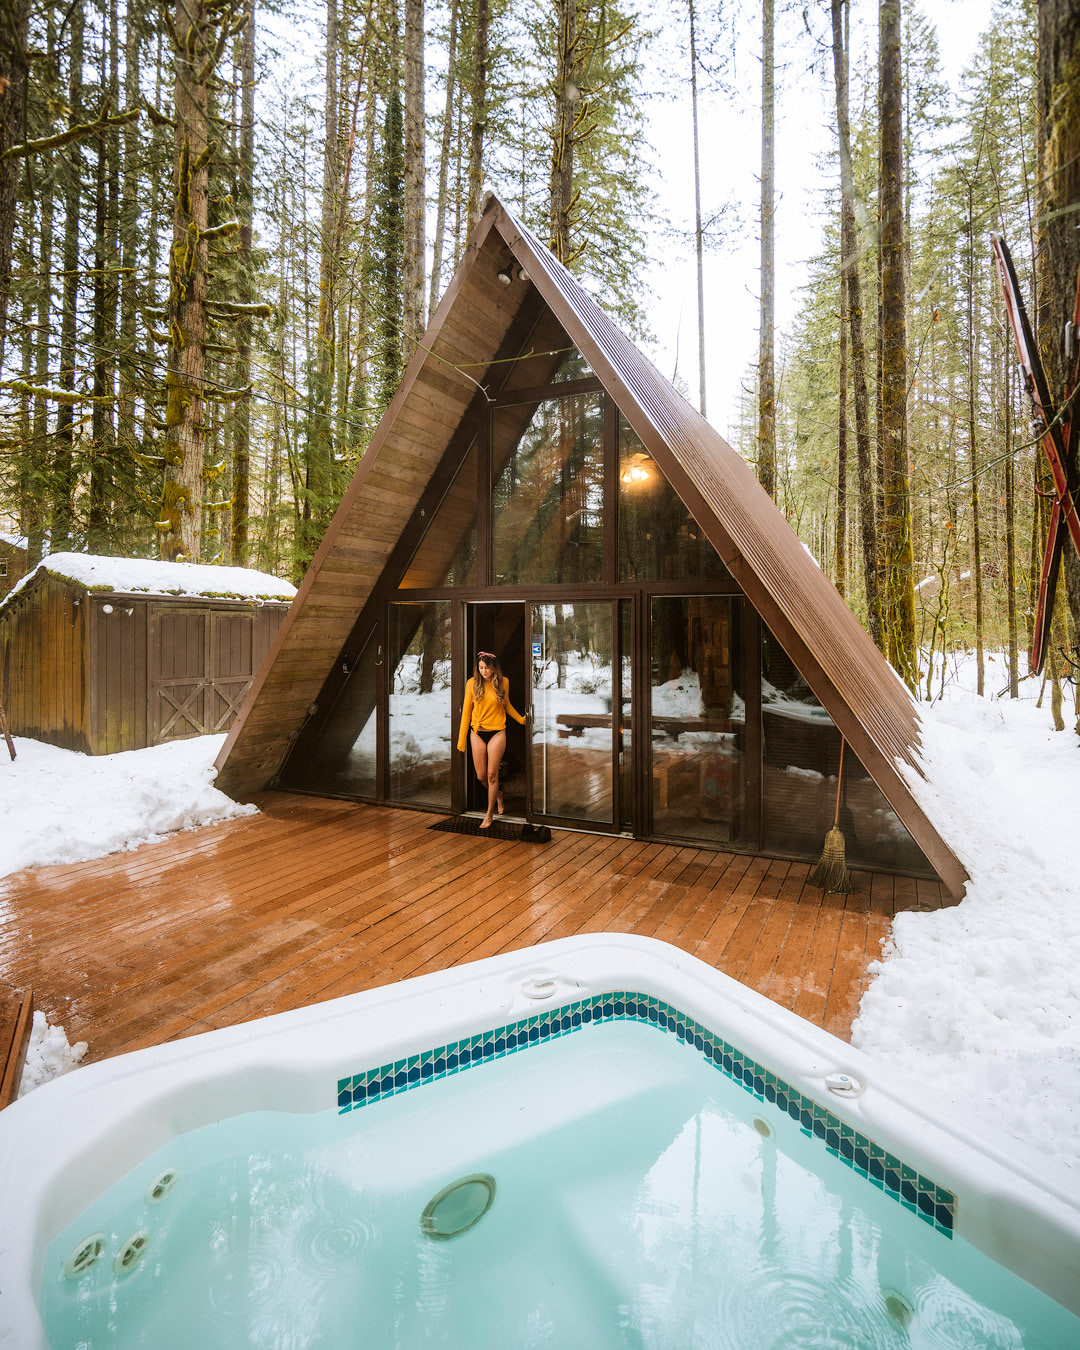 7 Magical Winter Outdoor Adventures For The Holidays - Backcountry - Renee Roaming - Winter Sky Tye Haus